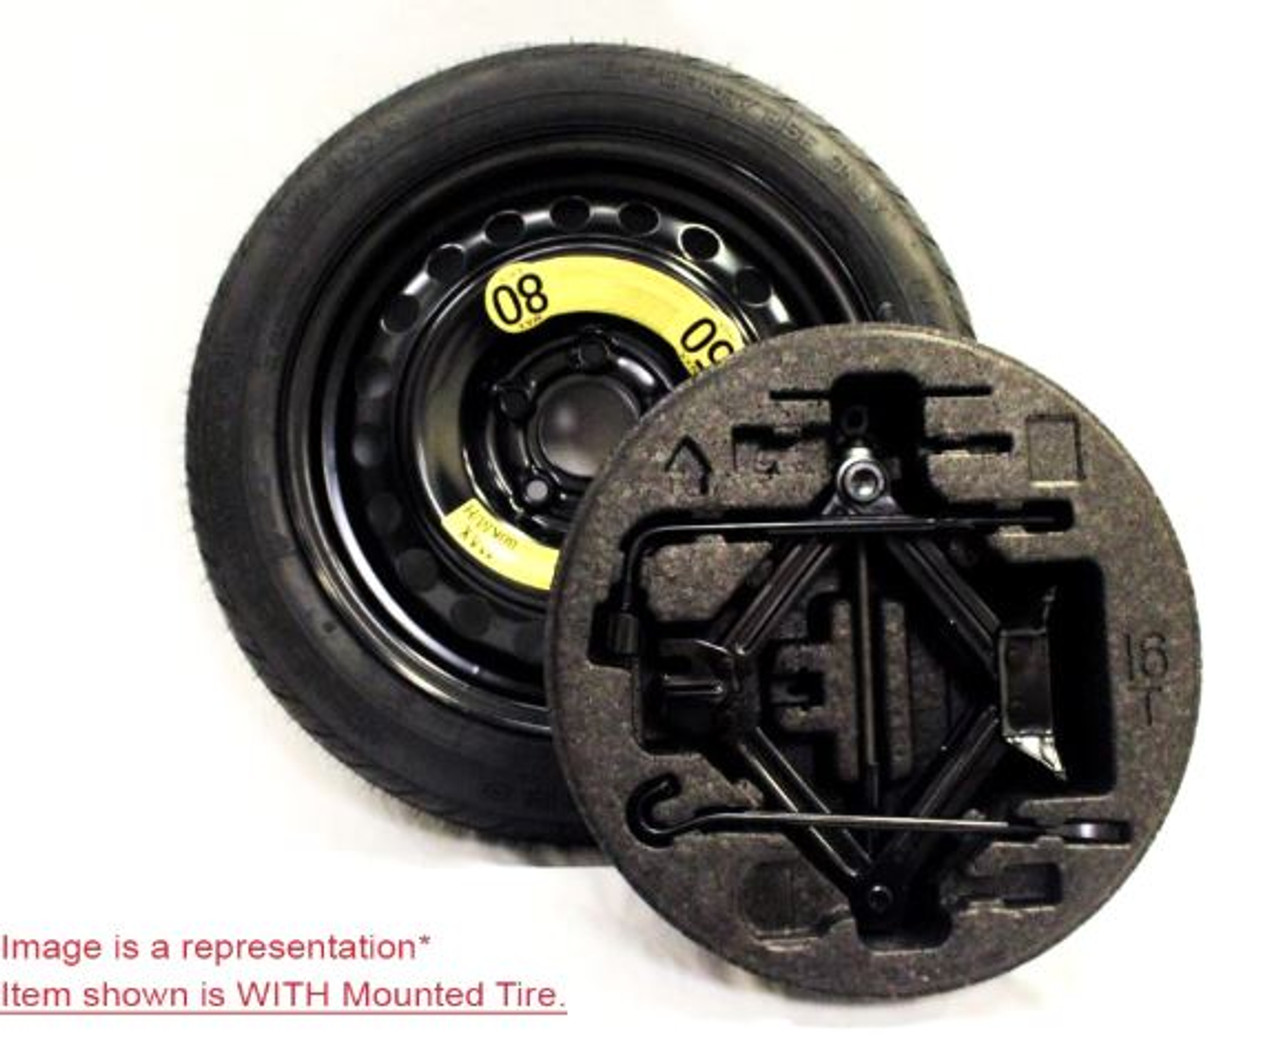 2012-2016 Hyundai Accent Spare Tire Kit - With Mounted Tire